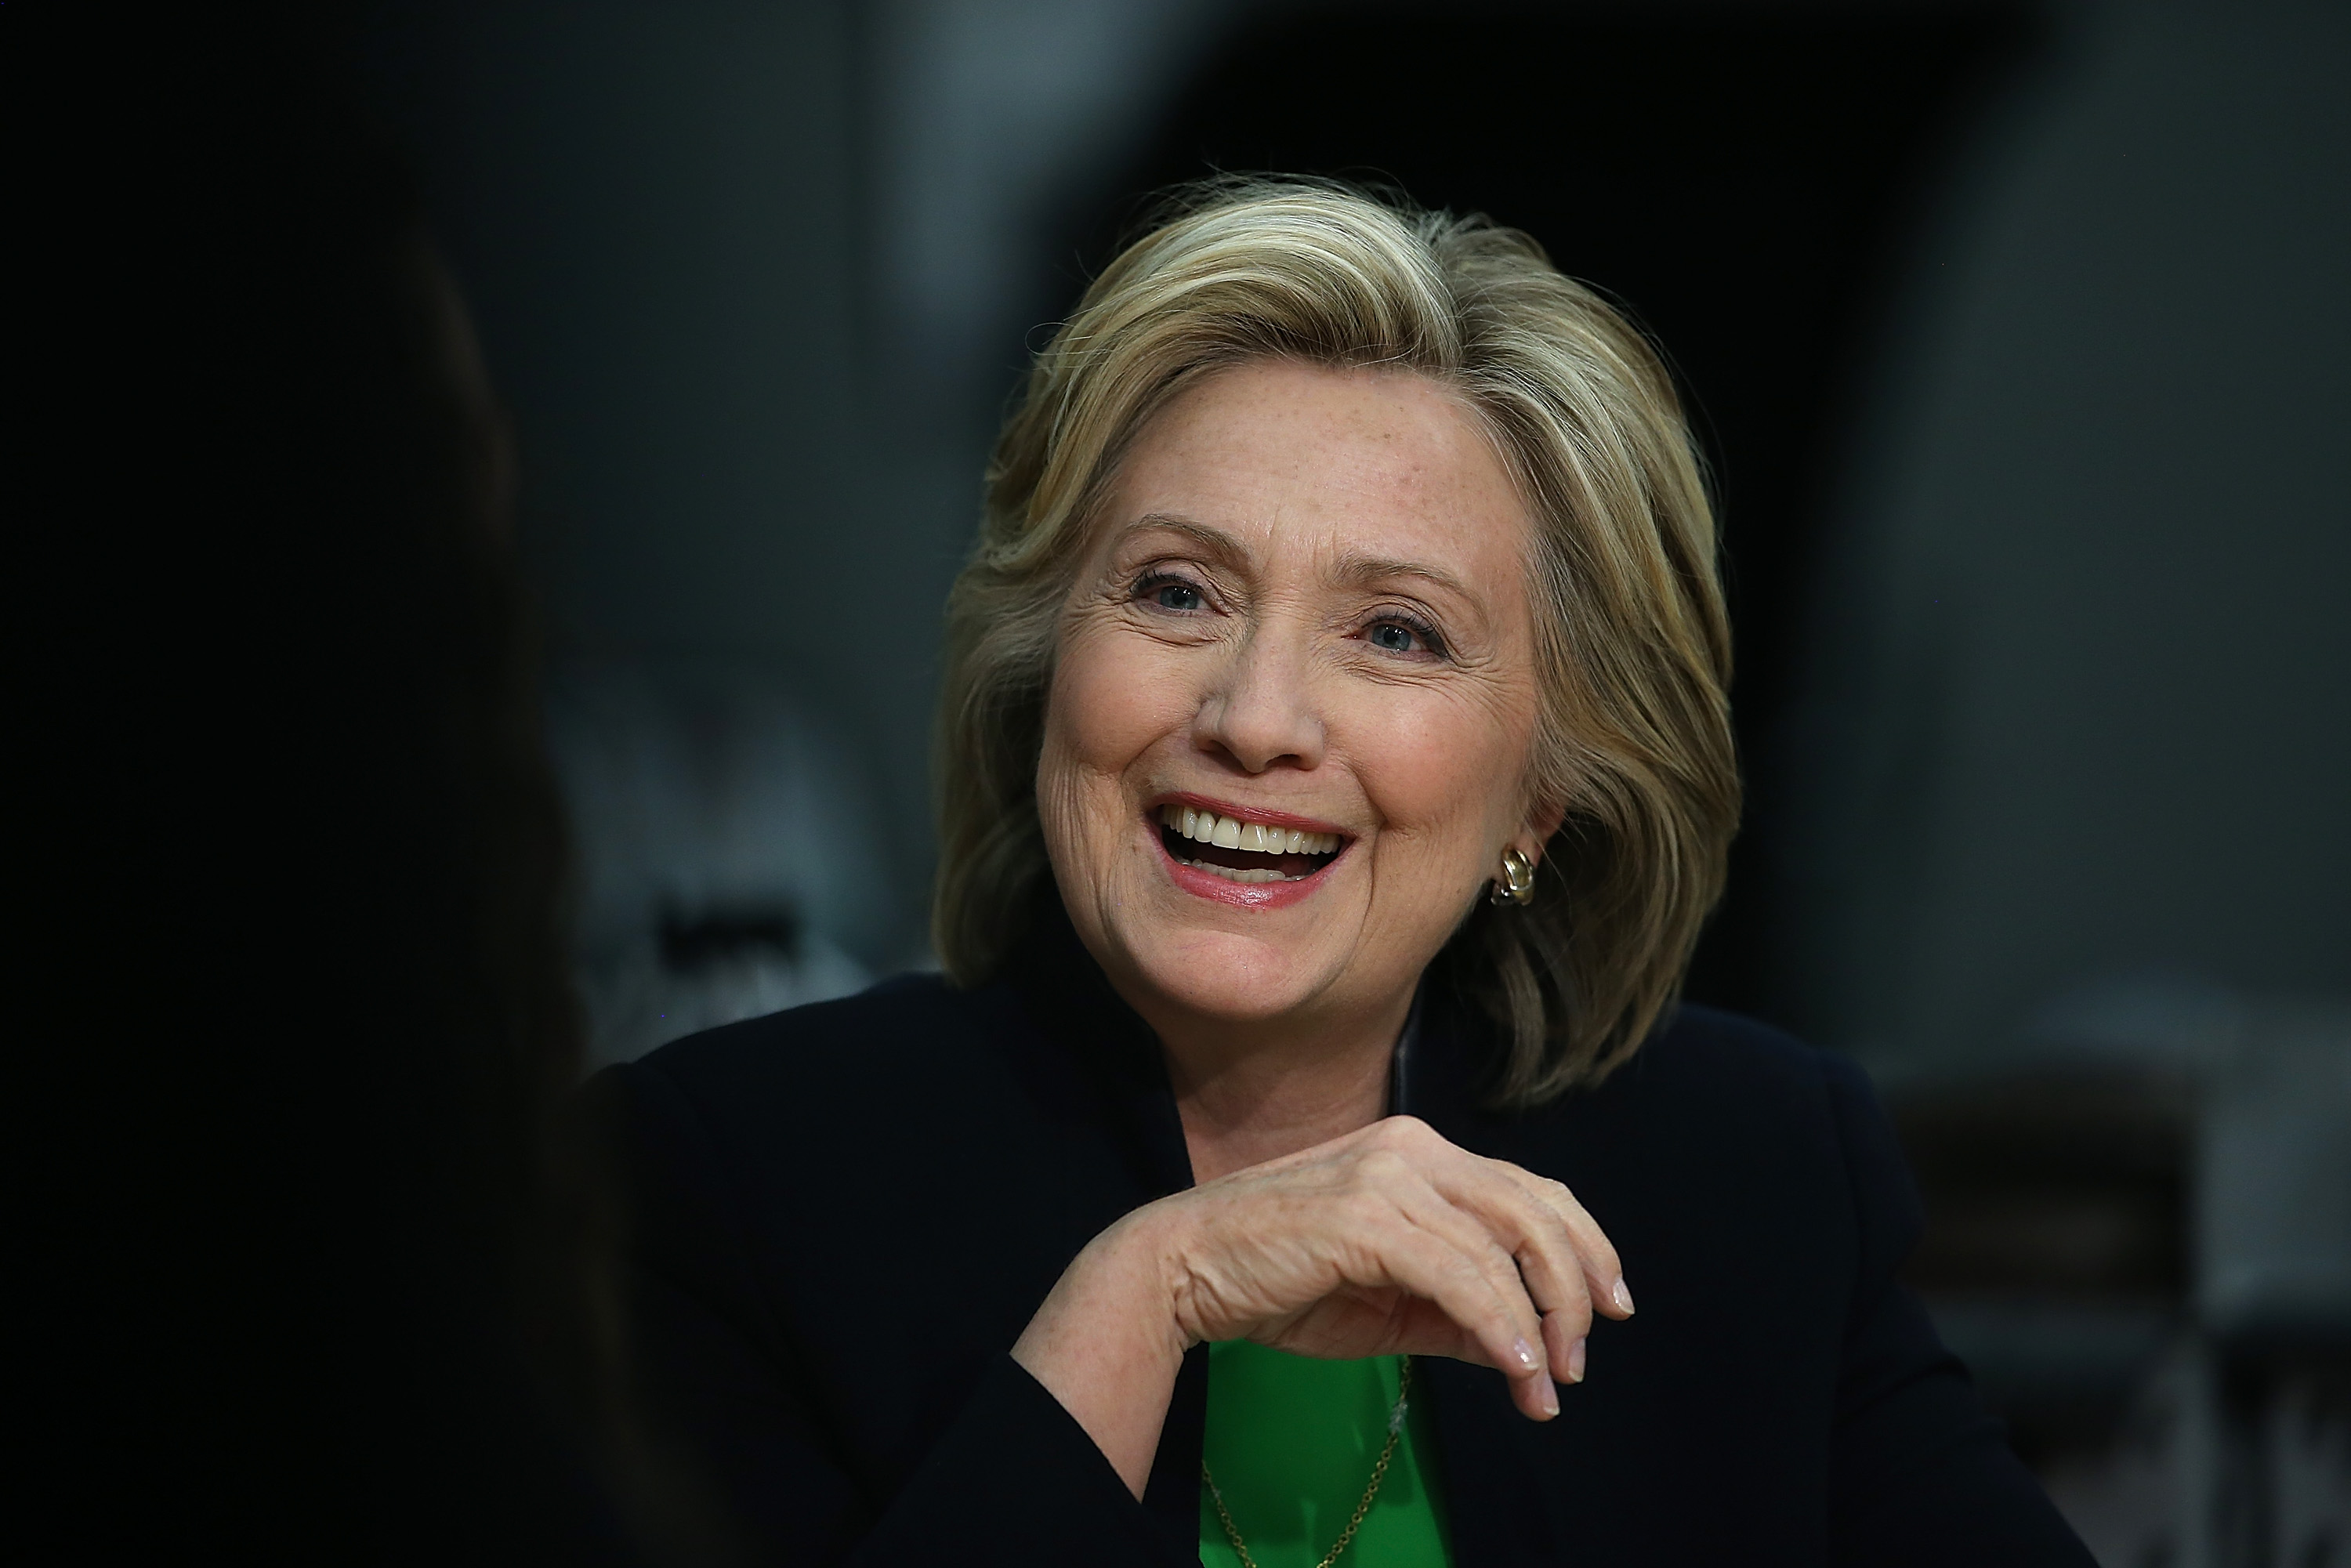 Hillary Clinton Begins Presidential Campaign In Iowa